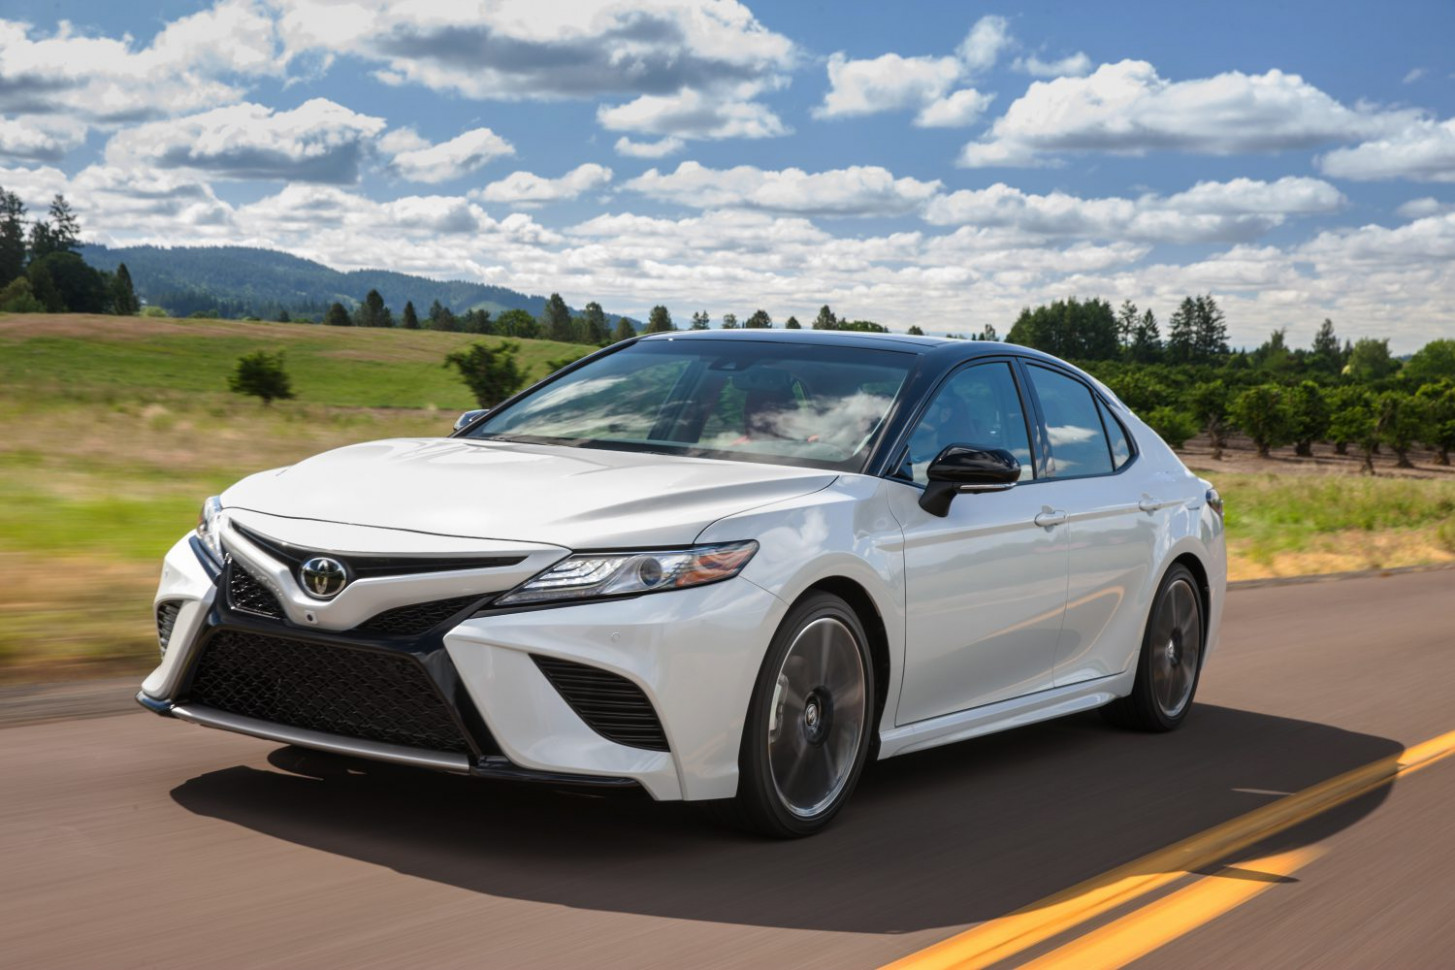 11 Toyota Camry Review, Ratings, Specs, Prices, and Photos - The ..